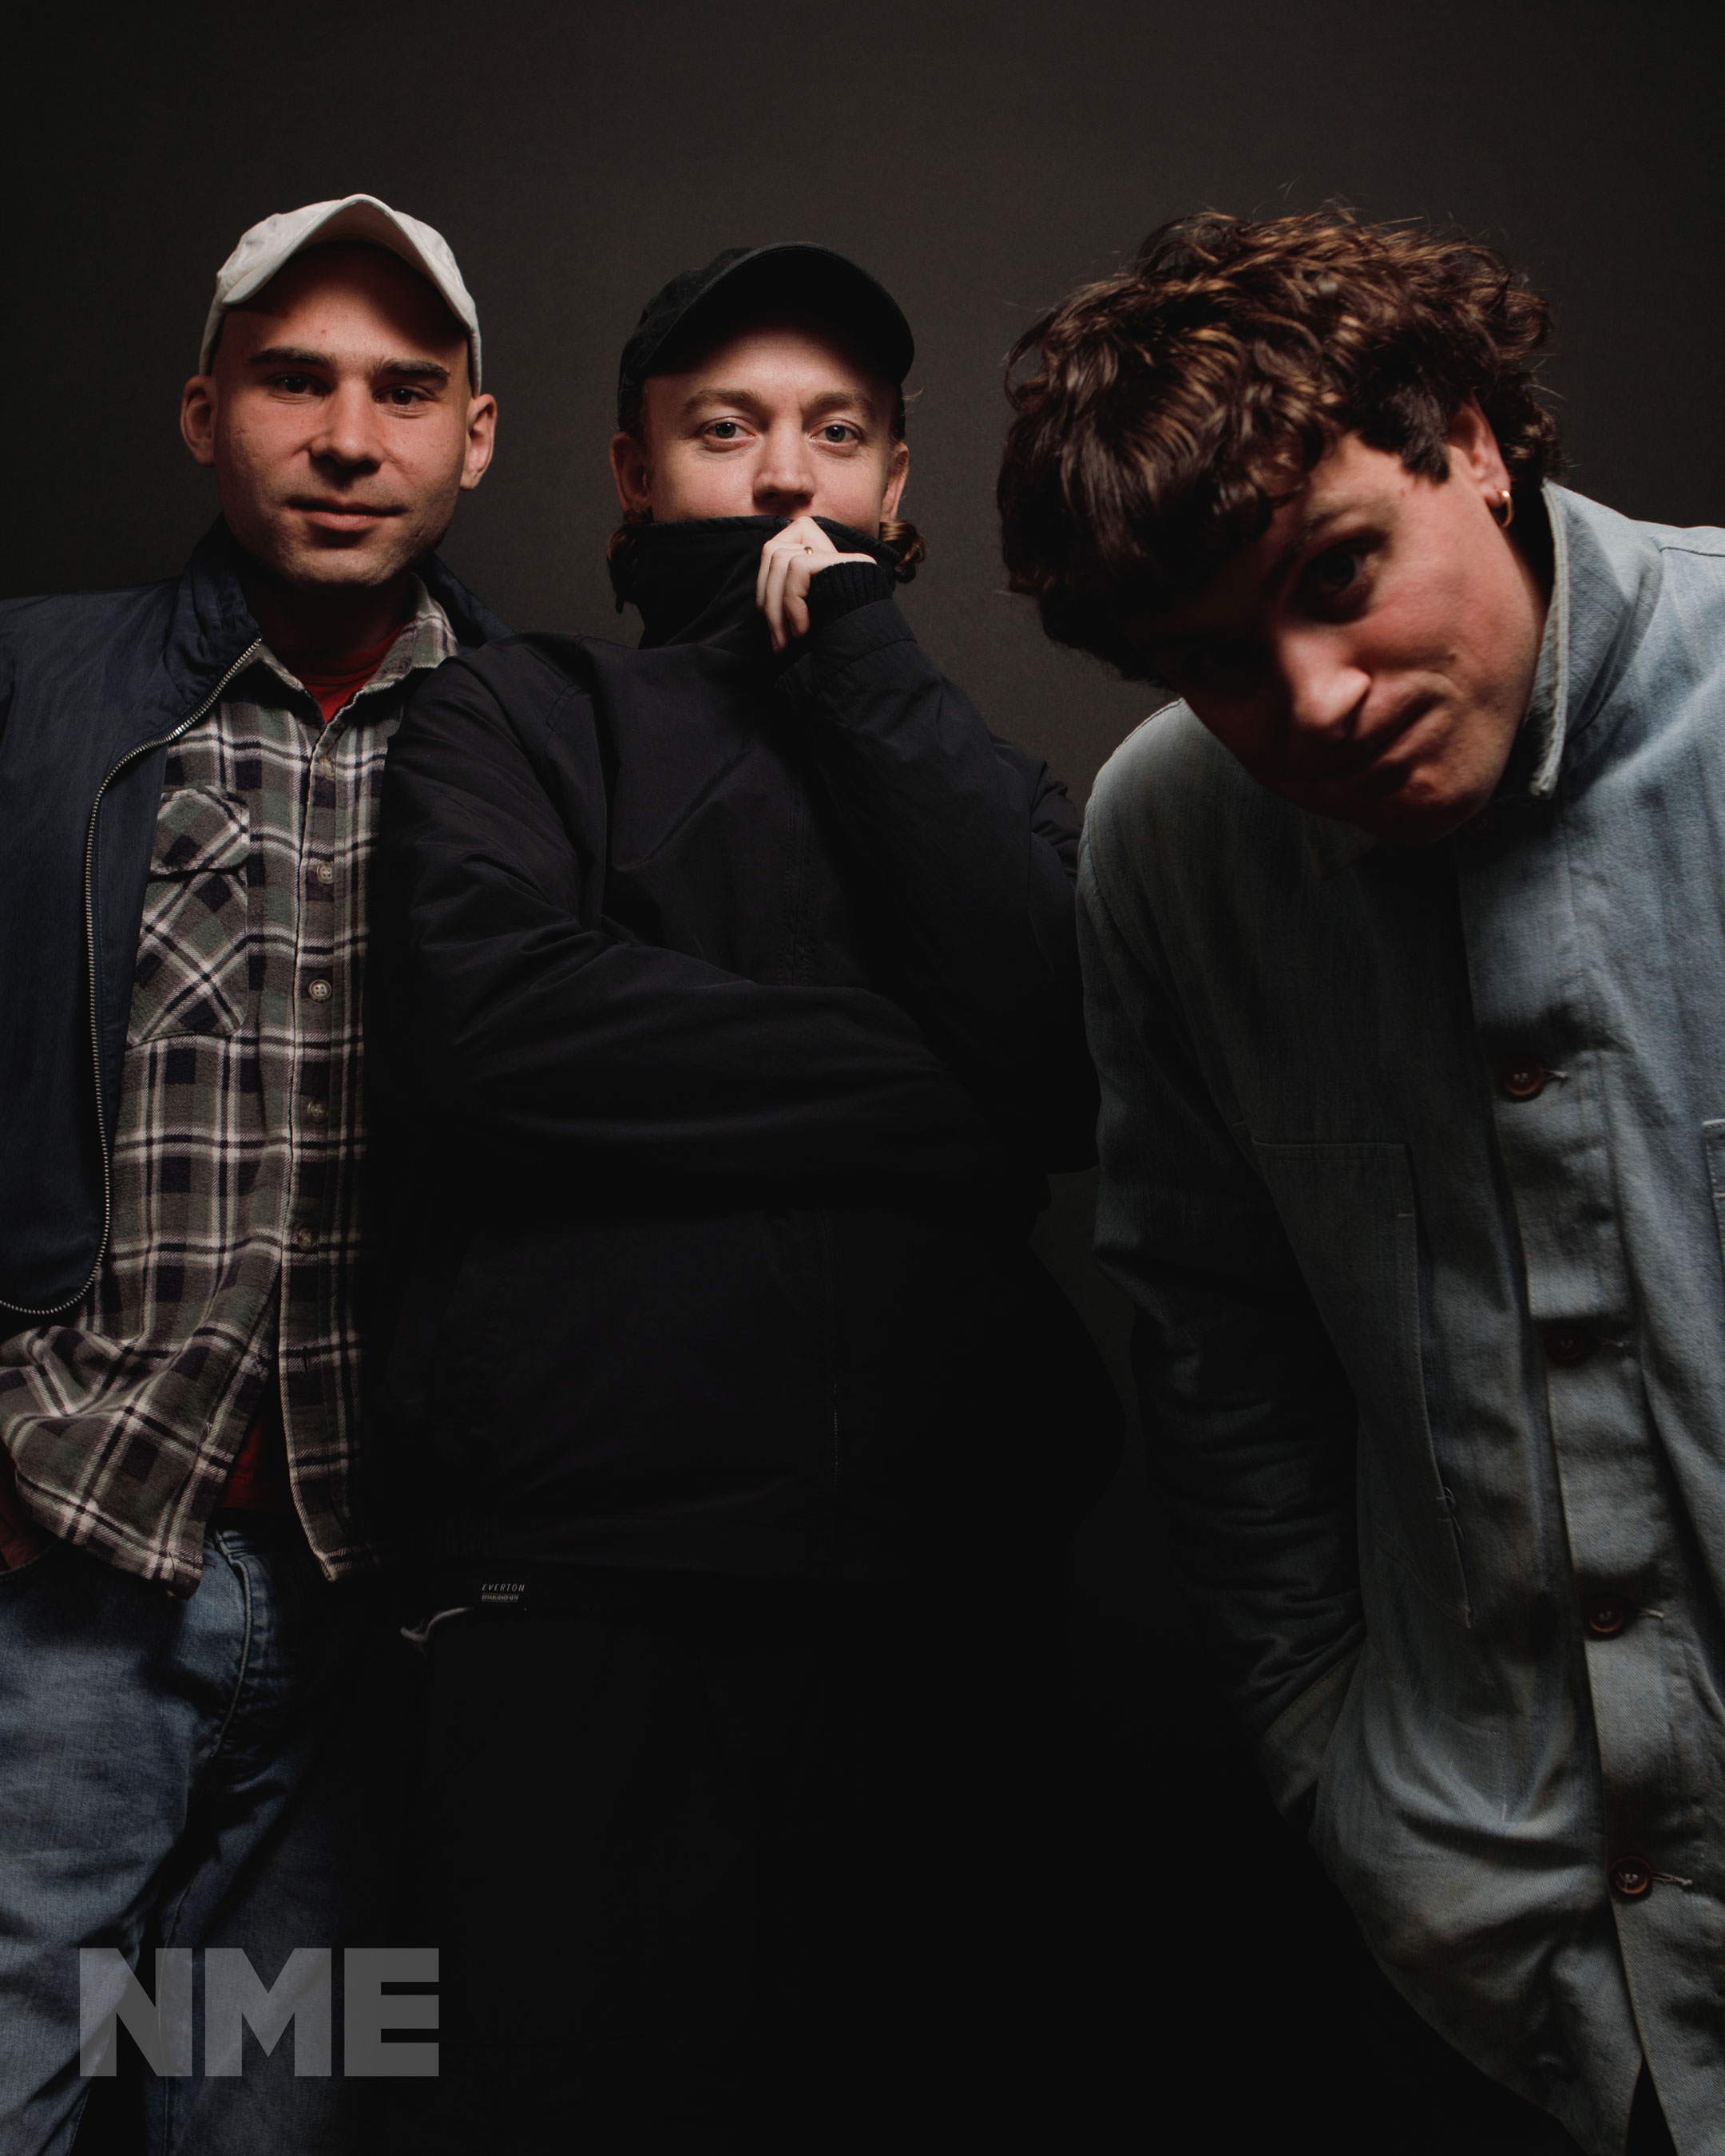 dma's nme cover interview